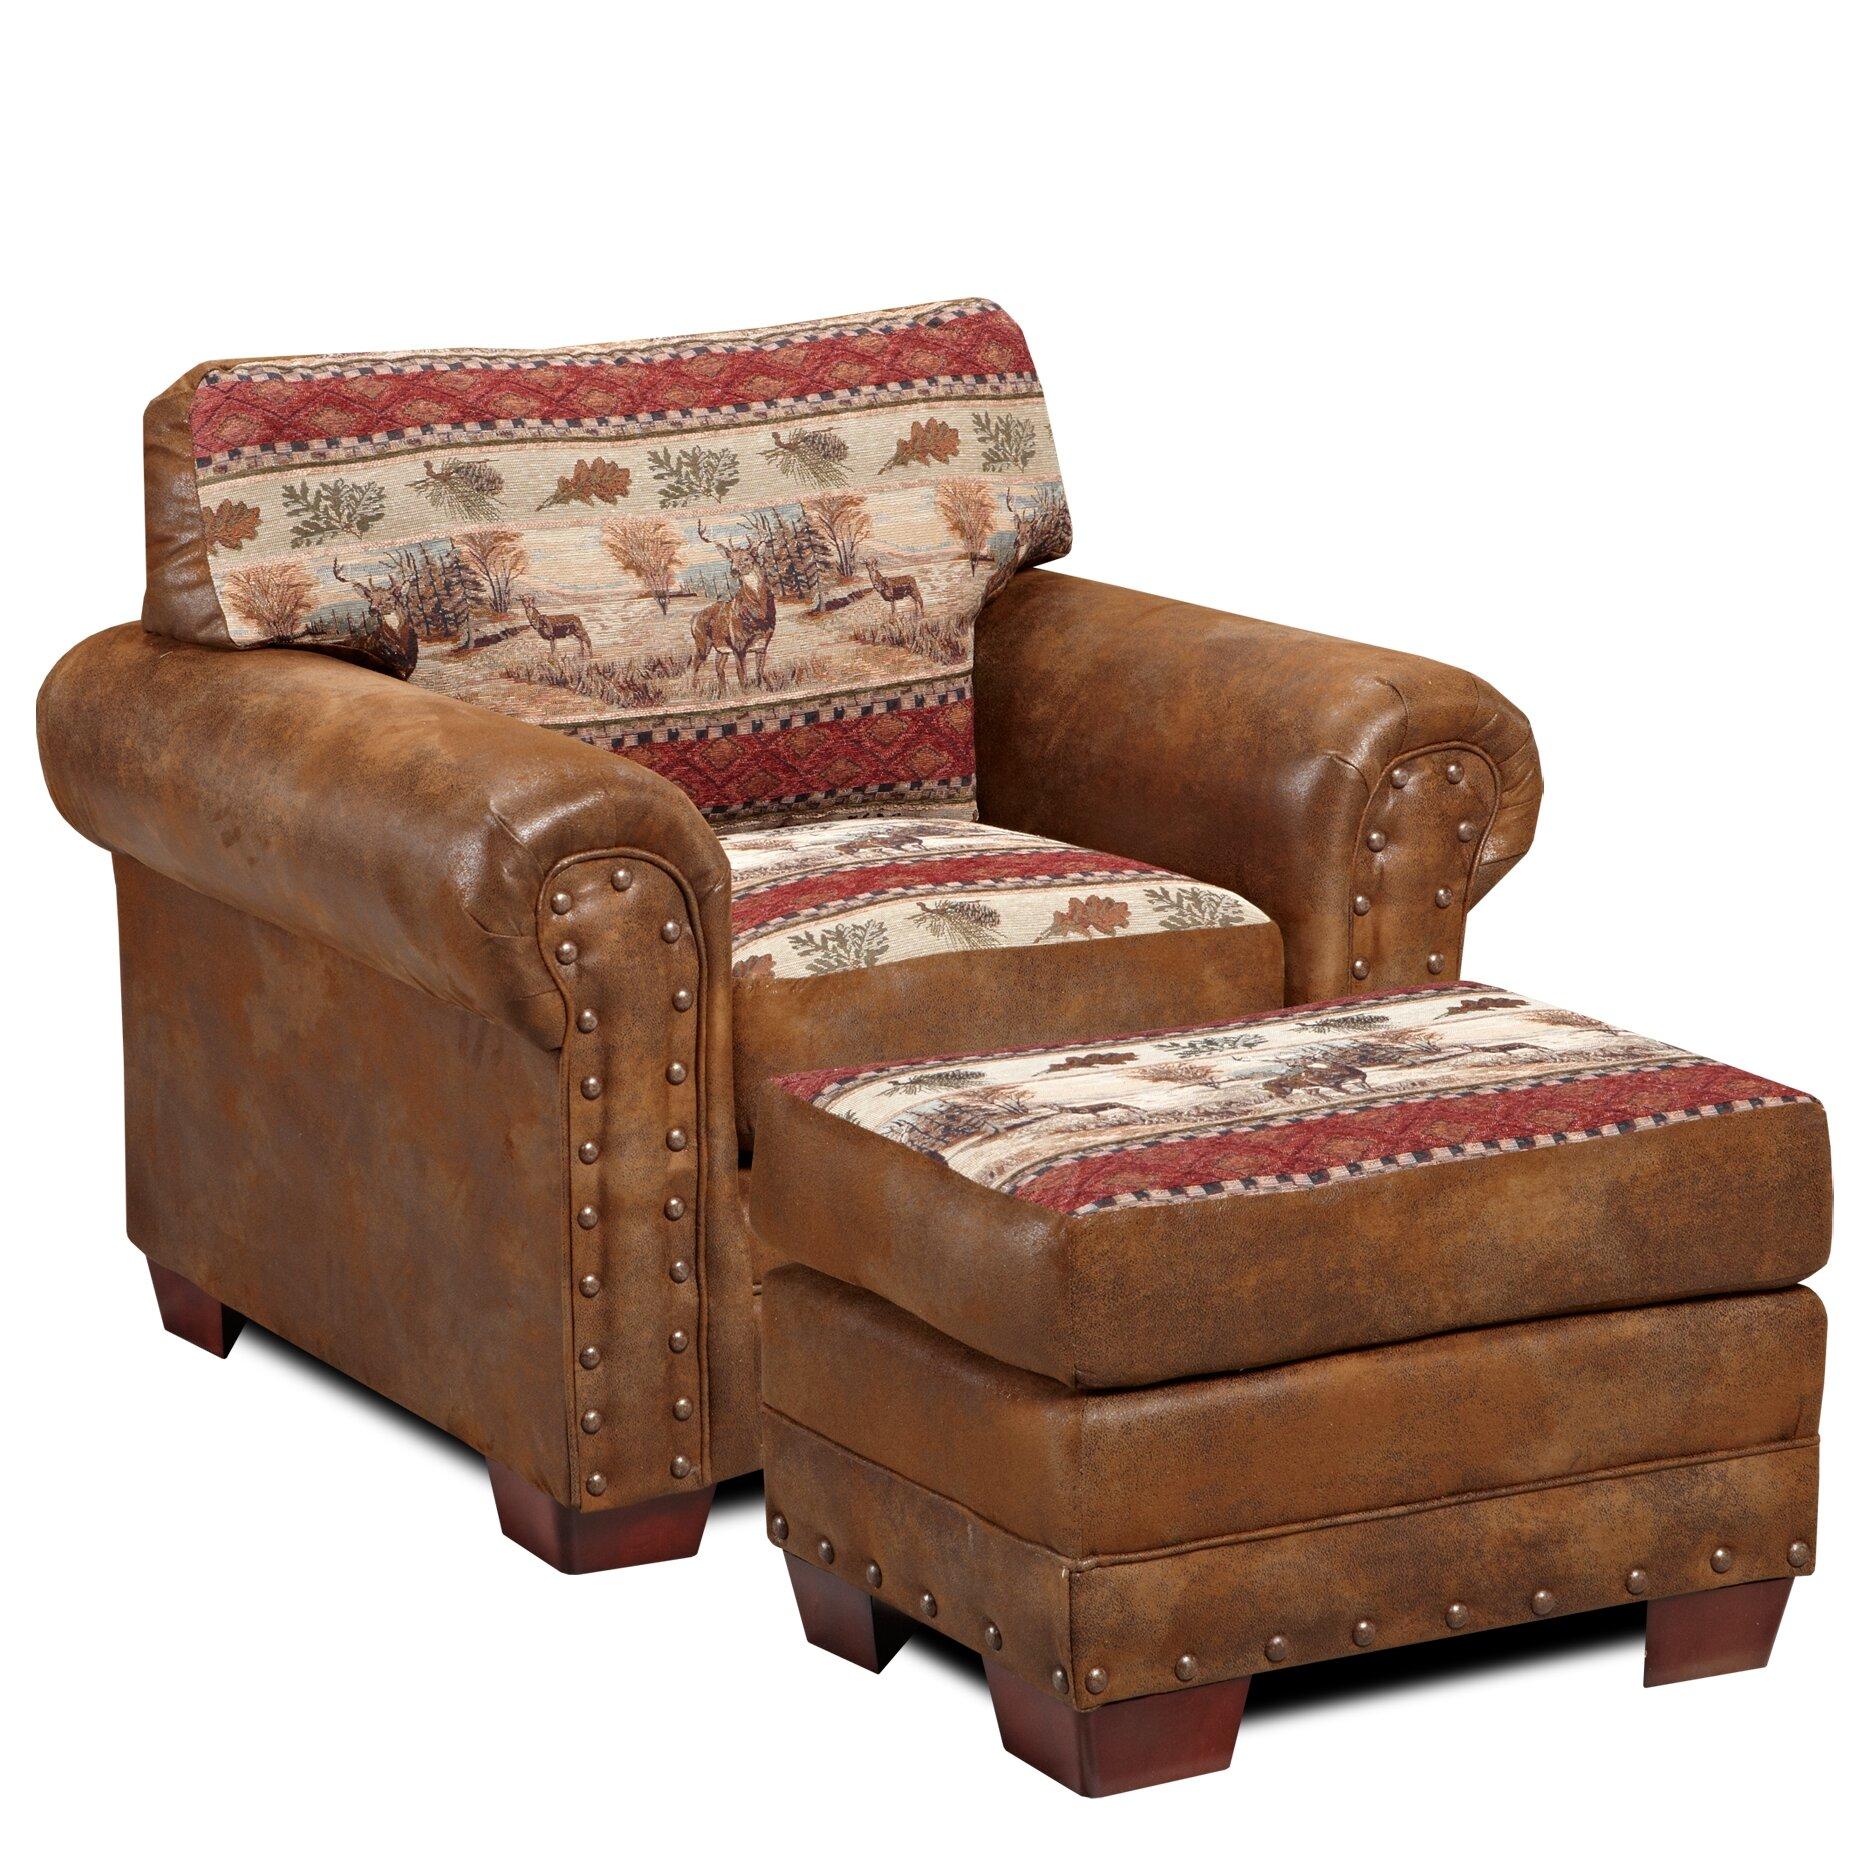 American furniture classics deer valley 4 piece living for 4 piece living room set